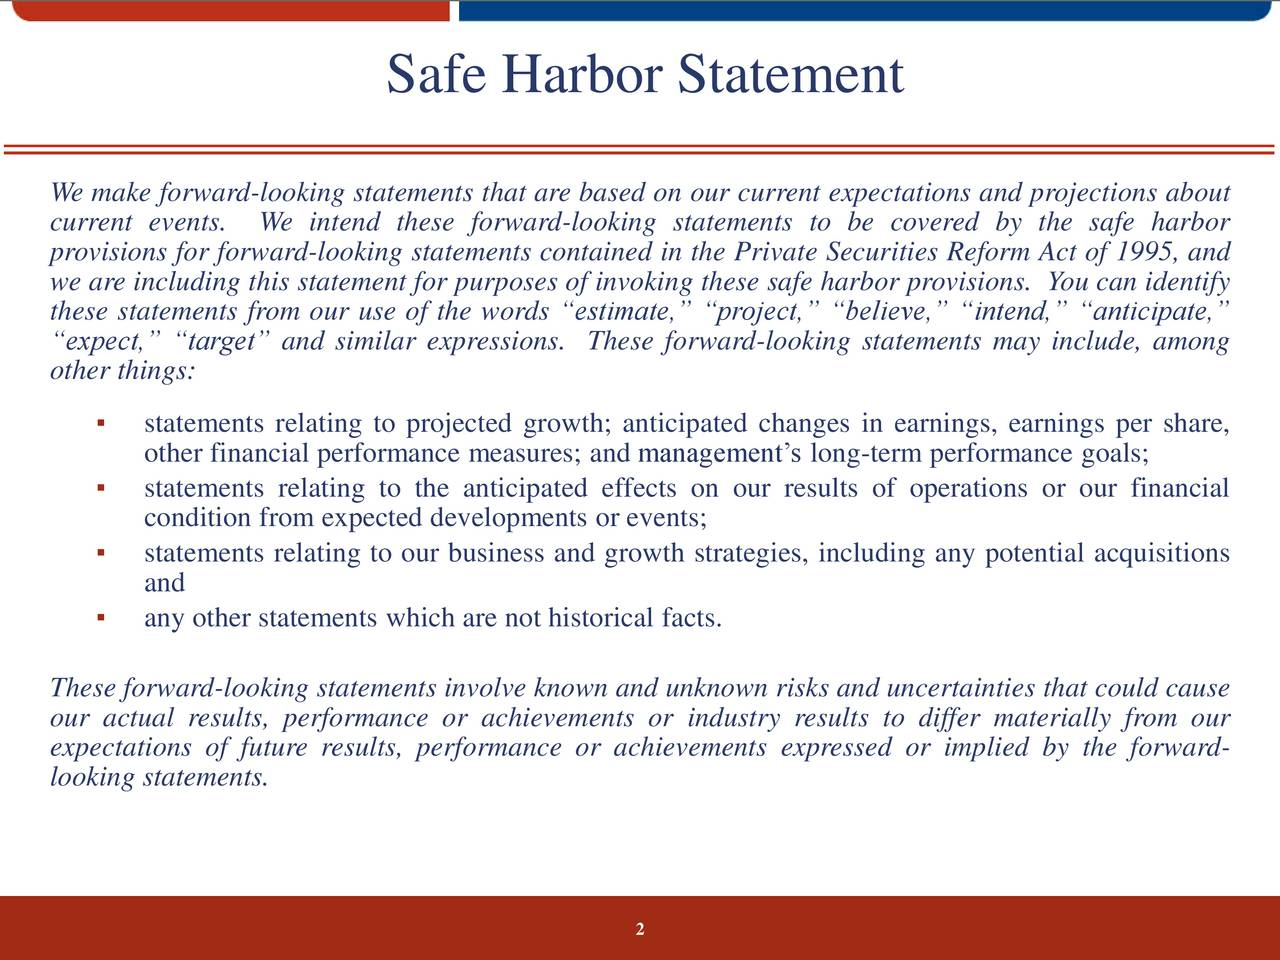 We make forward-looking statements that are based on our current expectations and projections about current events. We intend these forward-looking statements to be covered by the safe harbor provisions for forward-looking statements contained in the Private Securities Reform Act of 1995, and we are including this statement for purposes of invoking these safe harbor provisions. You can identify these statements from our use of the words estimate, project, believe, intend, anticipate, expect, target and similar expressions. These forward-looking statements may include, among other things: statements relating to projected growth; anticipated changes in earnings, earnings per share, other financial performance measures; and managements long-term performance goals; statements relating to the anticipated effects on our results of operations or our financial condition from expected developments or events; statements relating to our business and growth strategies, including any potential acquisitions and any other statements which are not historical facts. These forward-looking statements involve known and unknown risks and uncertainties that could cause our actual results, performance or achievements or industry results to differ materially from our expectations of future results, performance or achievements expressed or implied by the forward- looking statements. 2